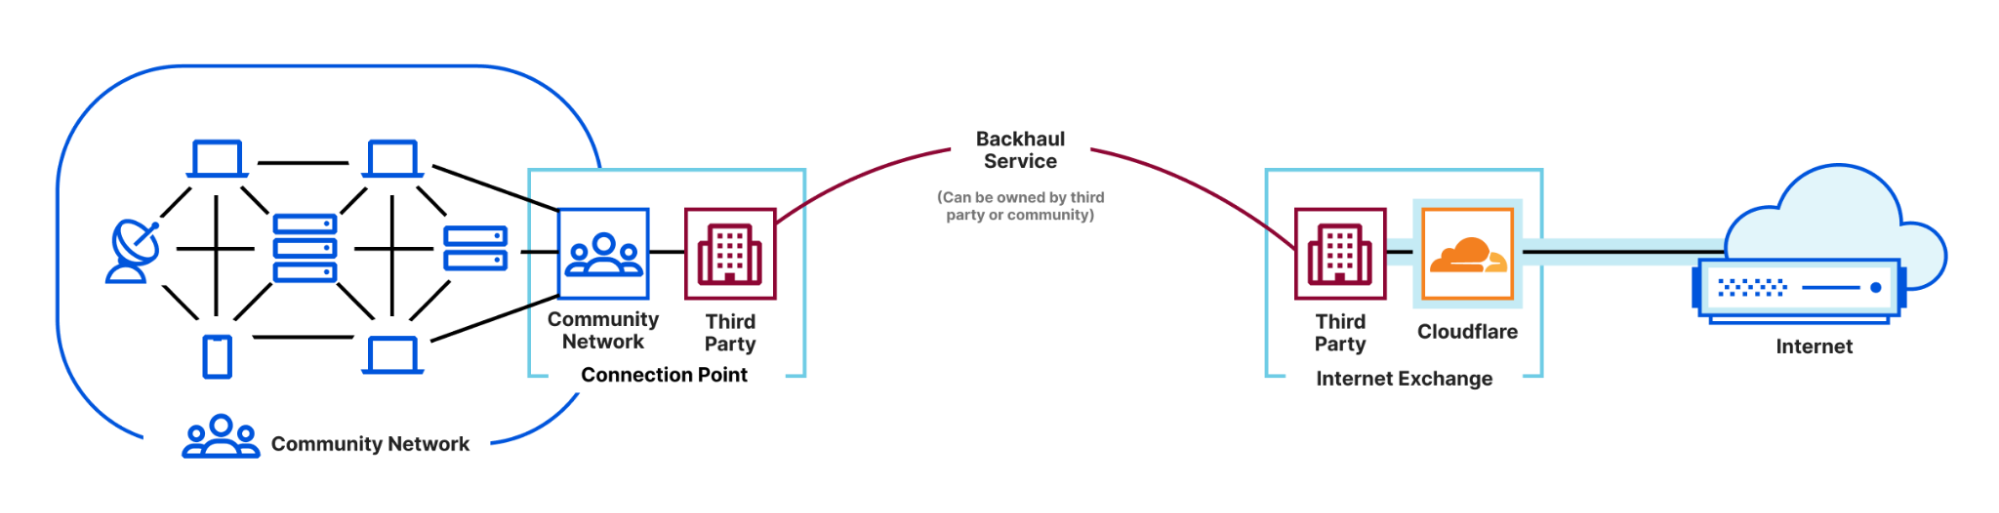 Conventional point-to-point backhaul